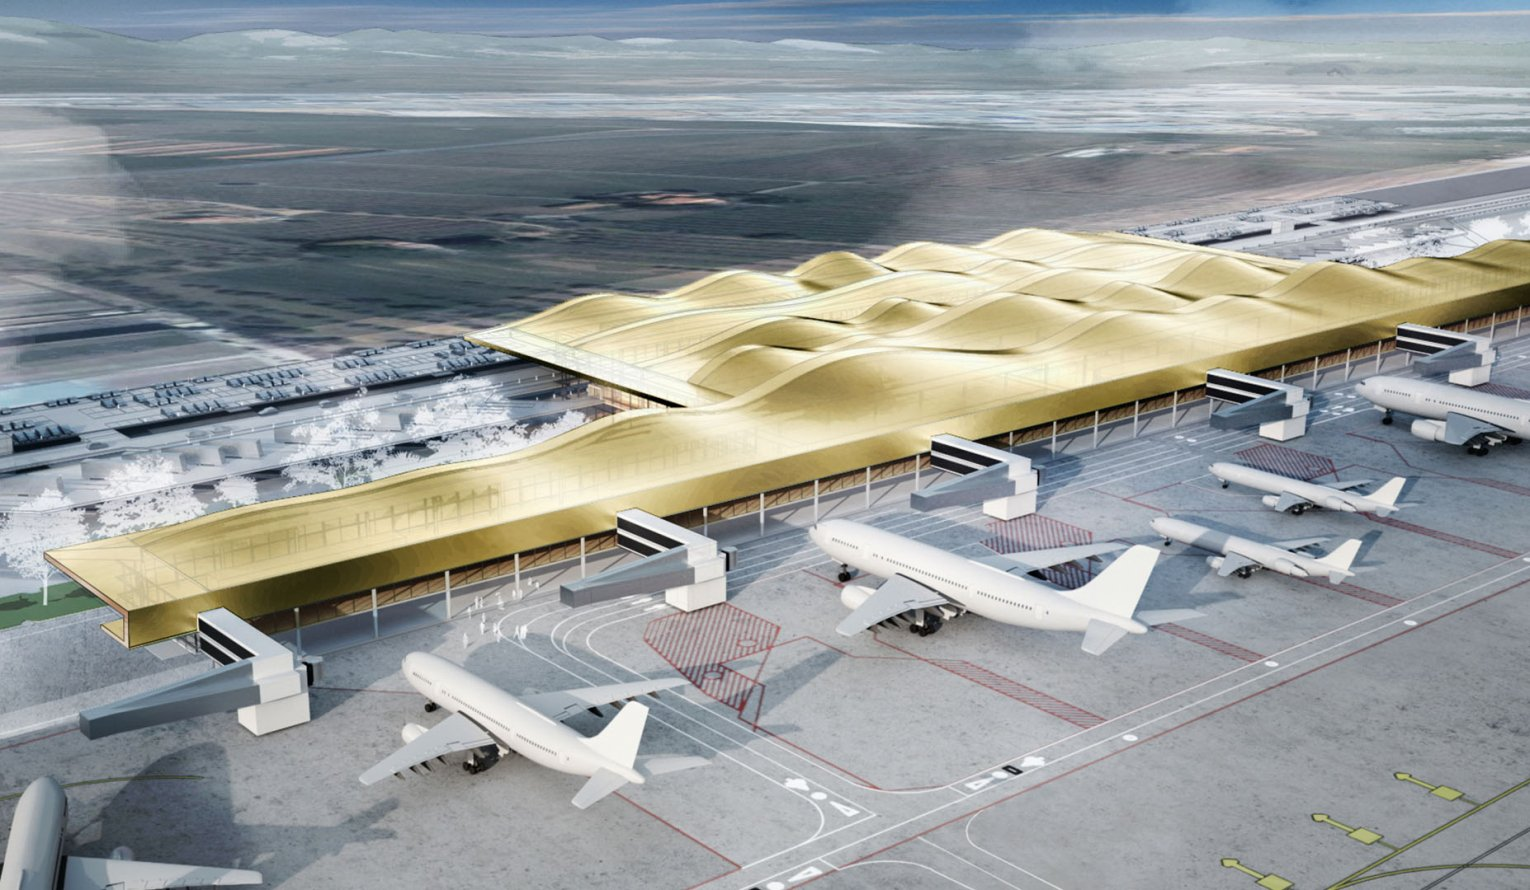 New Reus Airport